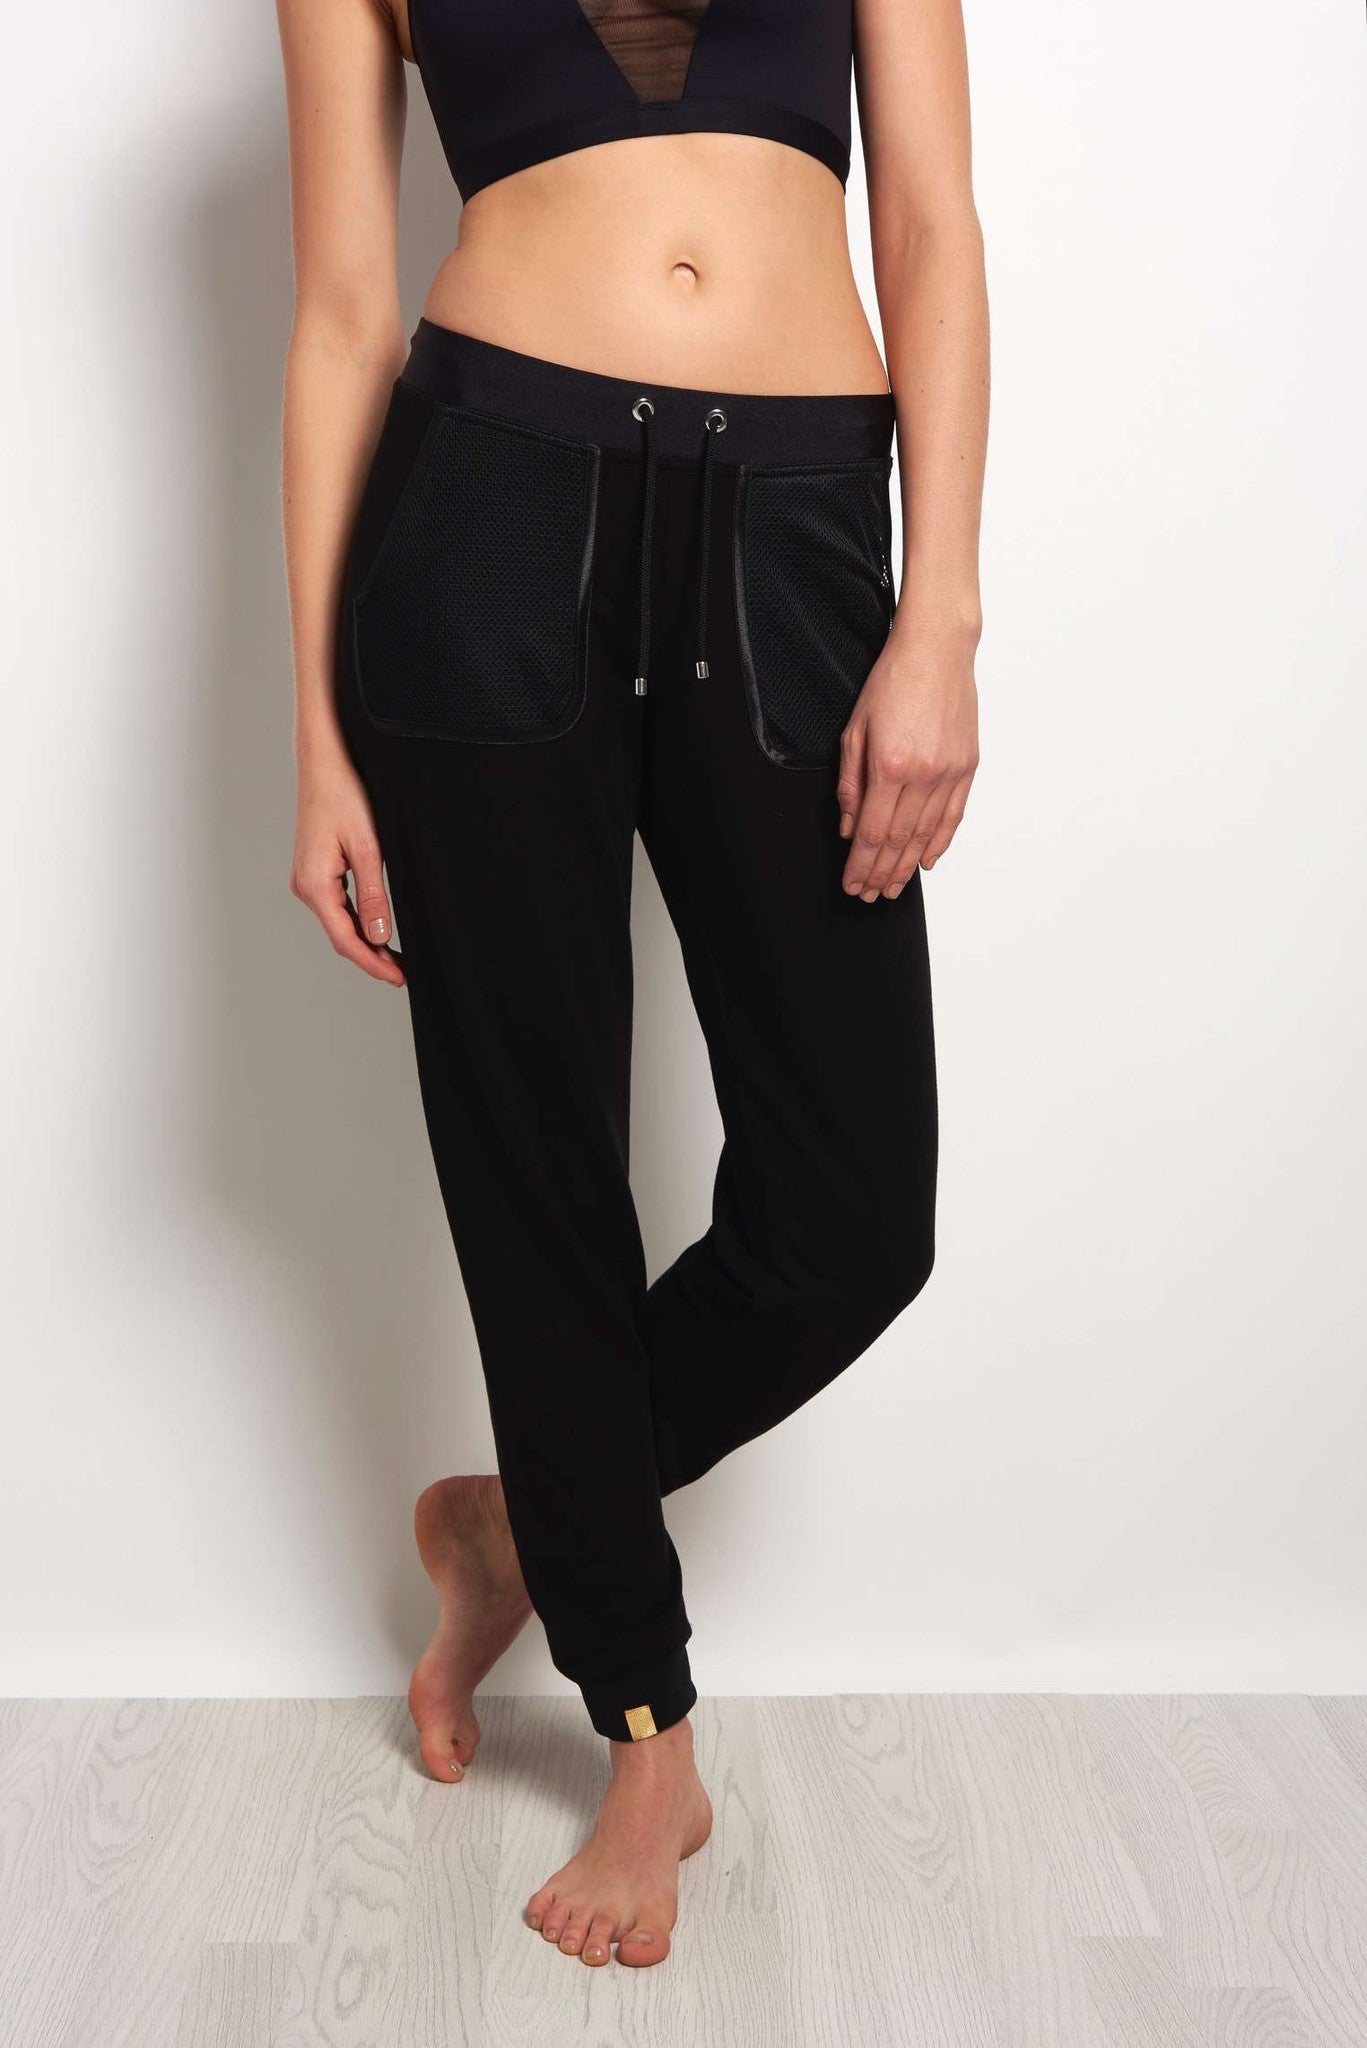 MONREAL Cosy Sweatpants - Black image 1 - The Sports Edit